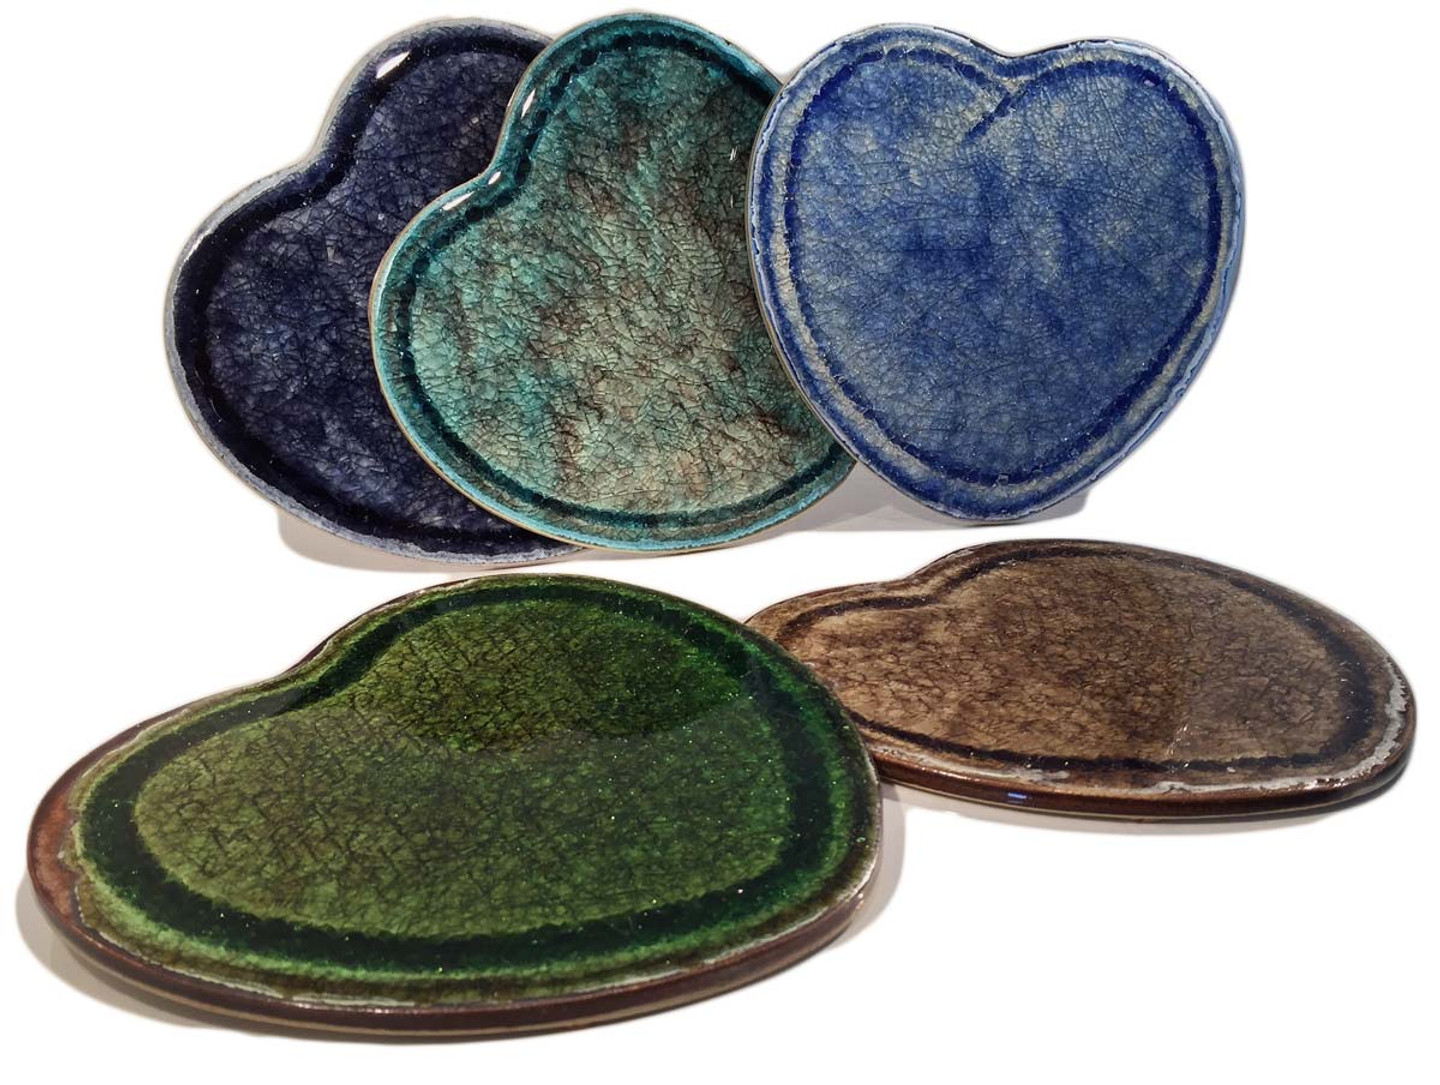 Heart Shaped Trivets